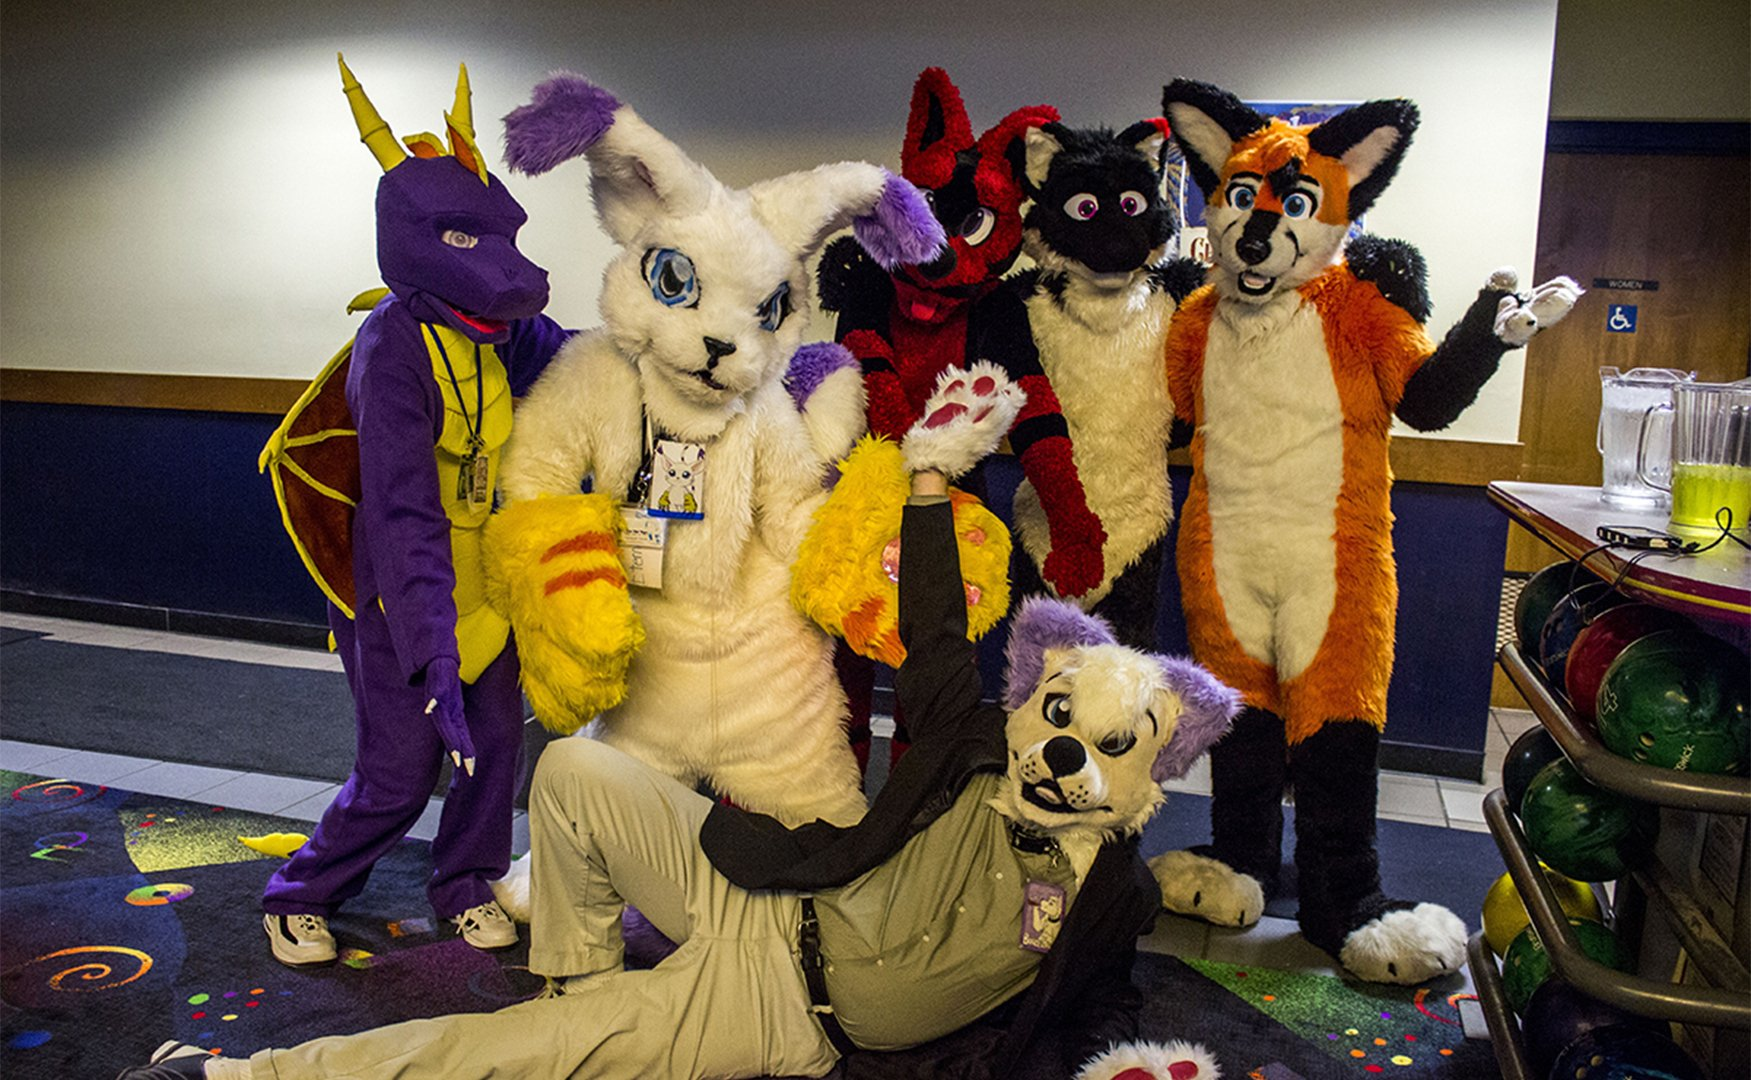 Every Question You've Ever Had About the Furries, Answered